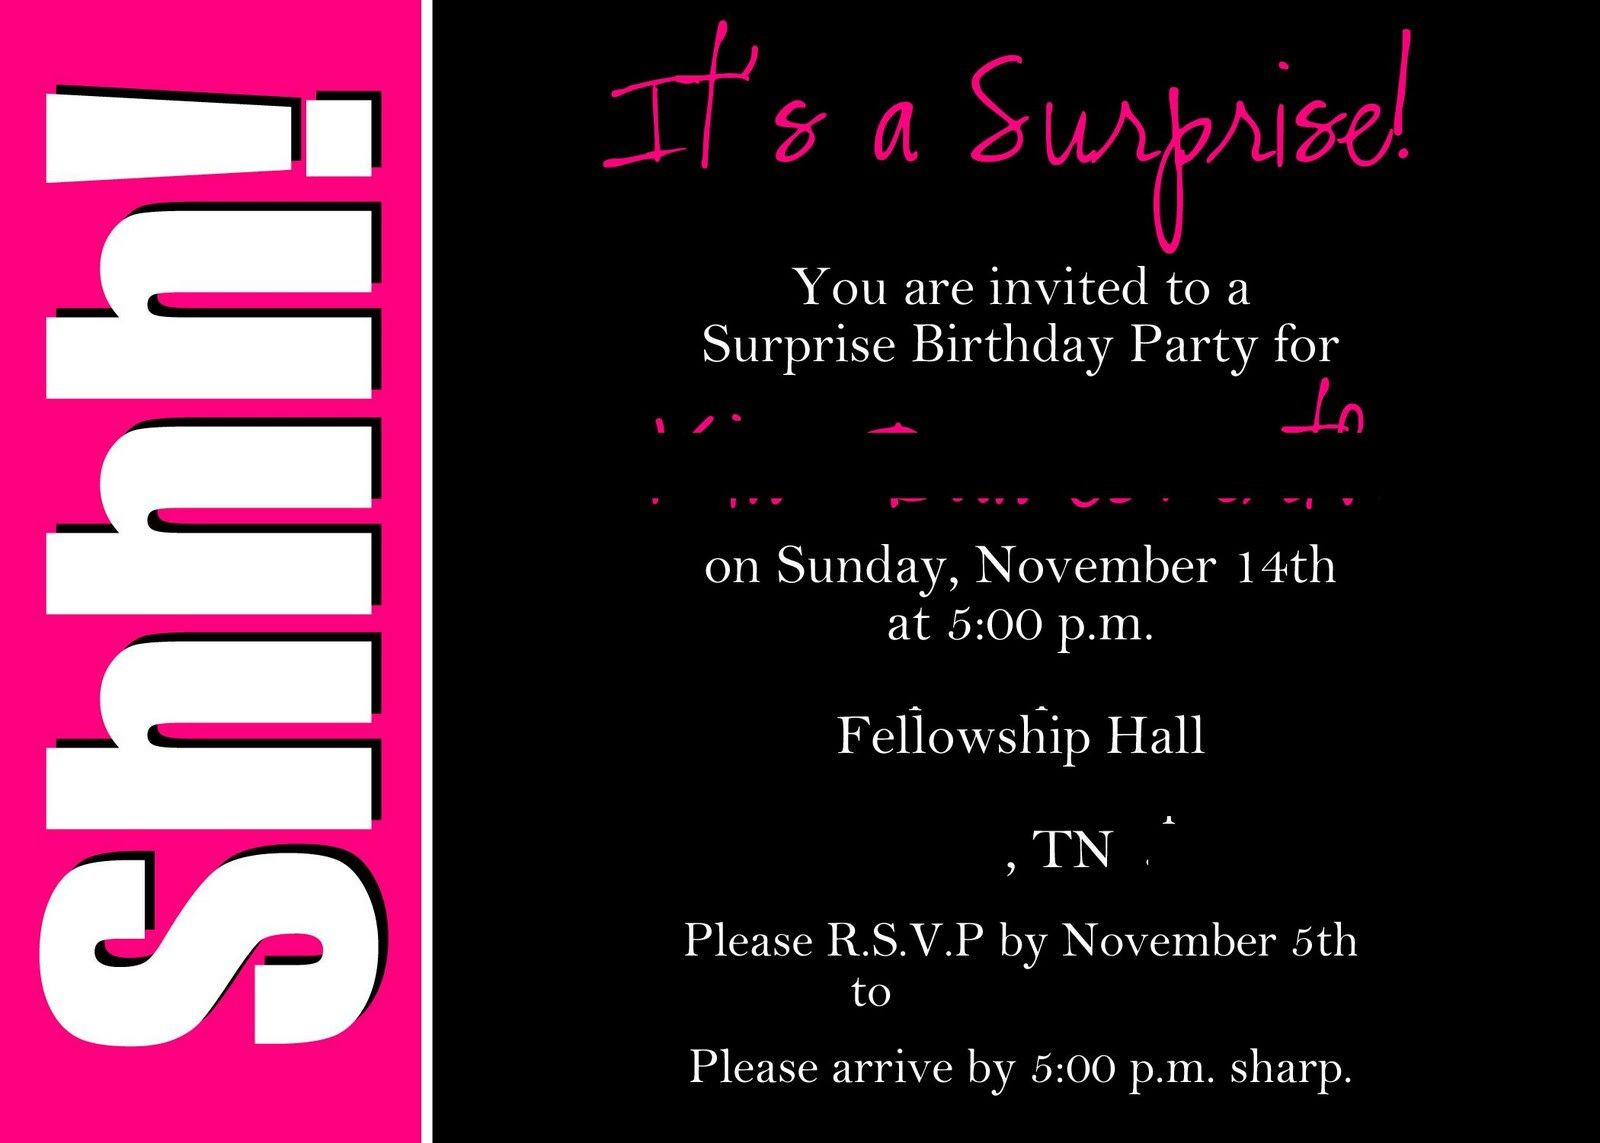 40th surprise birthday party invitations party invitations free 40th surprise birthday party invitations filmwisefo Image collections